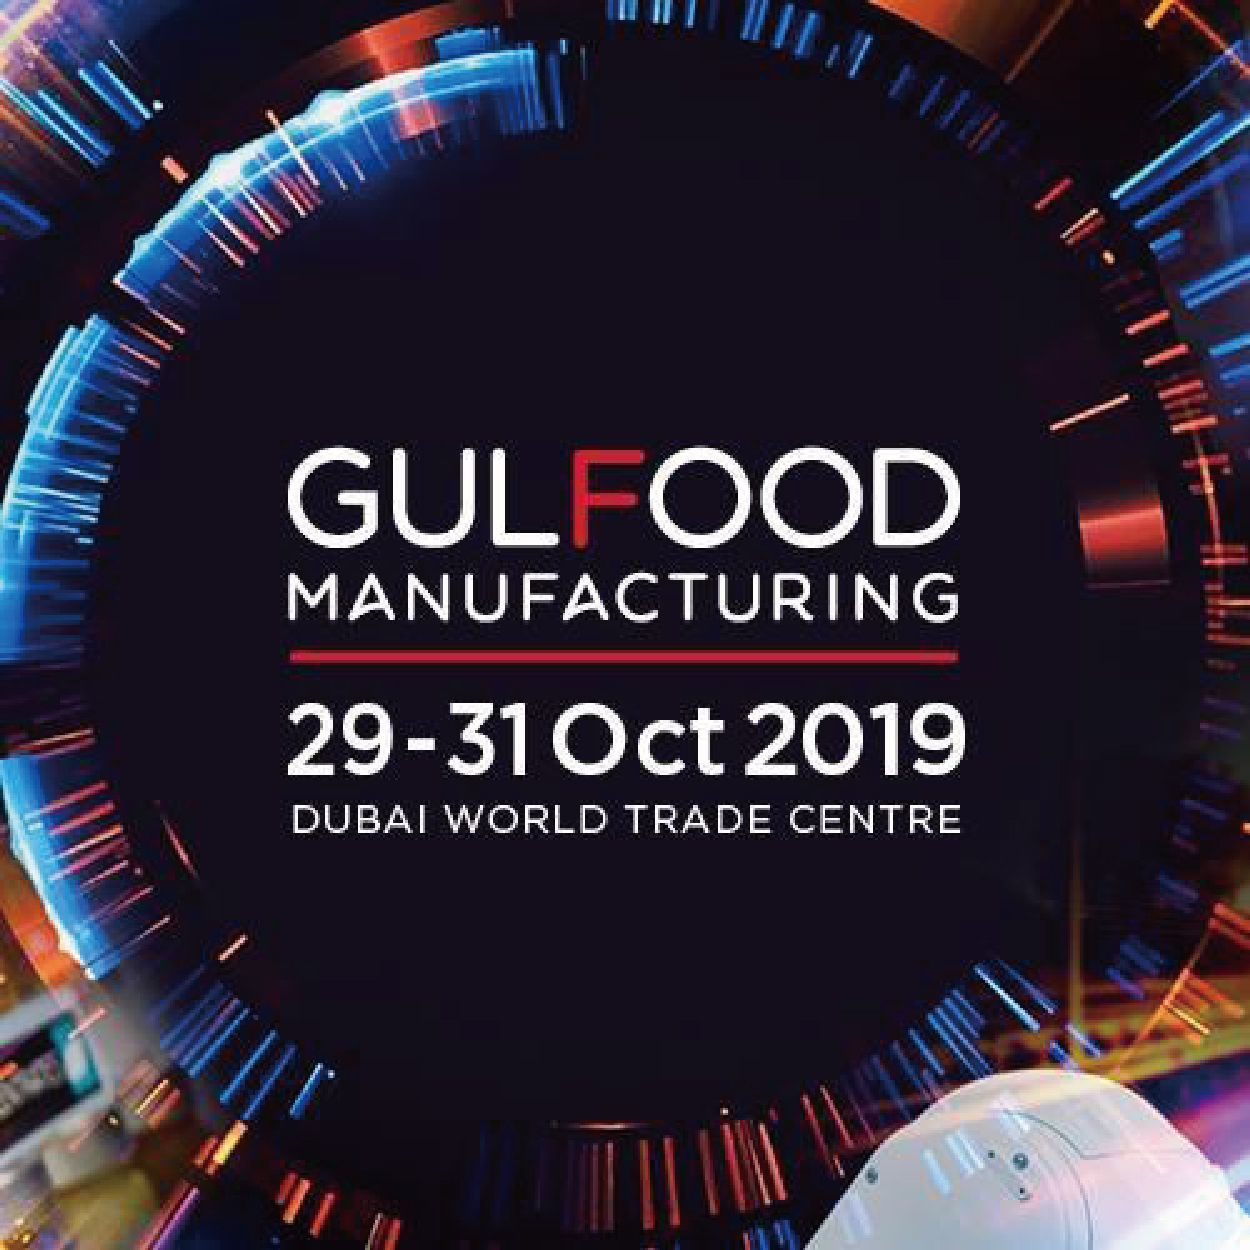 Gulfood Manufacturing 2